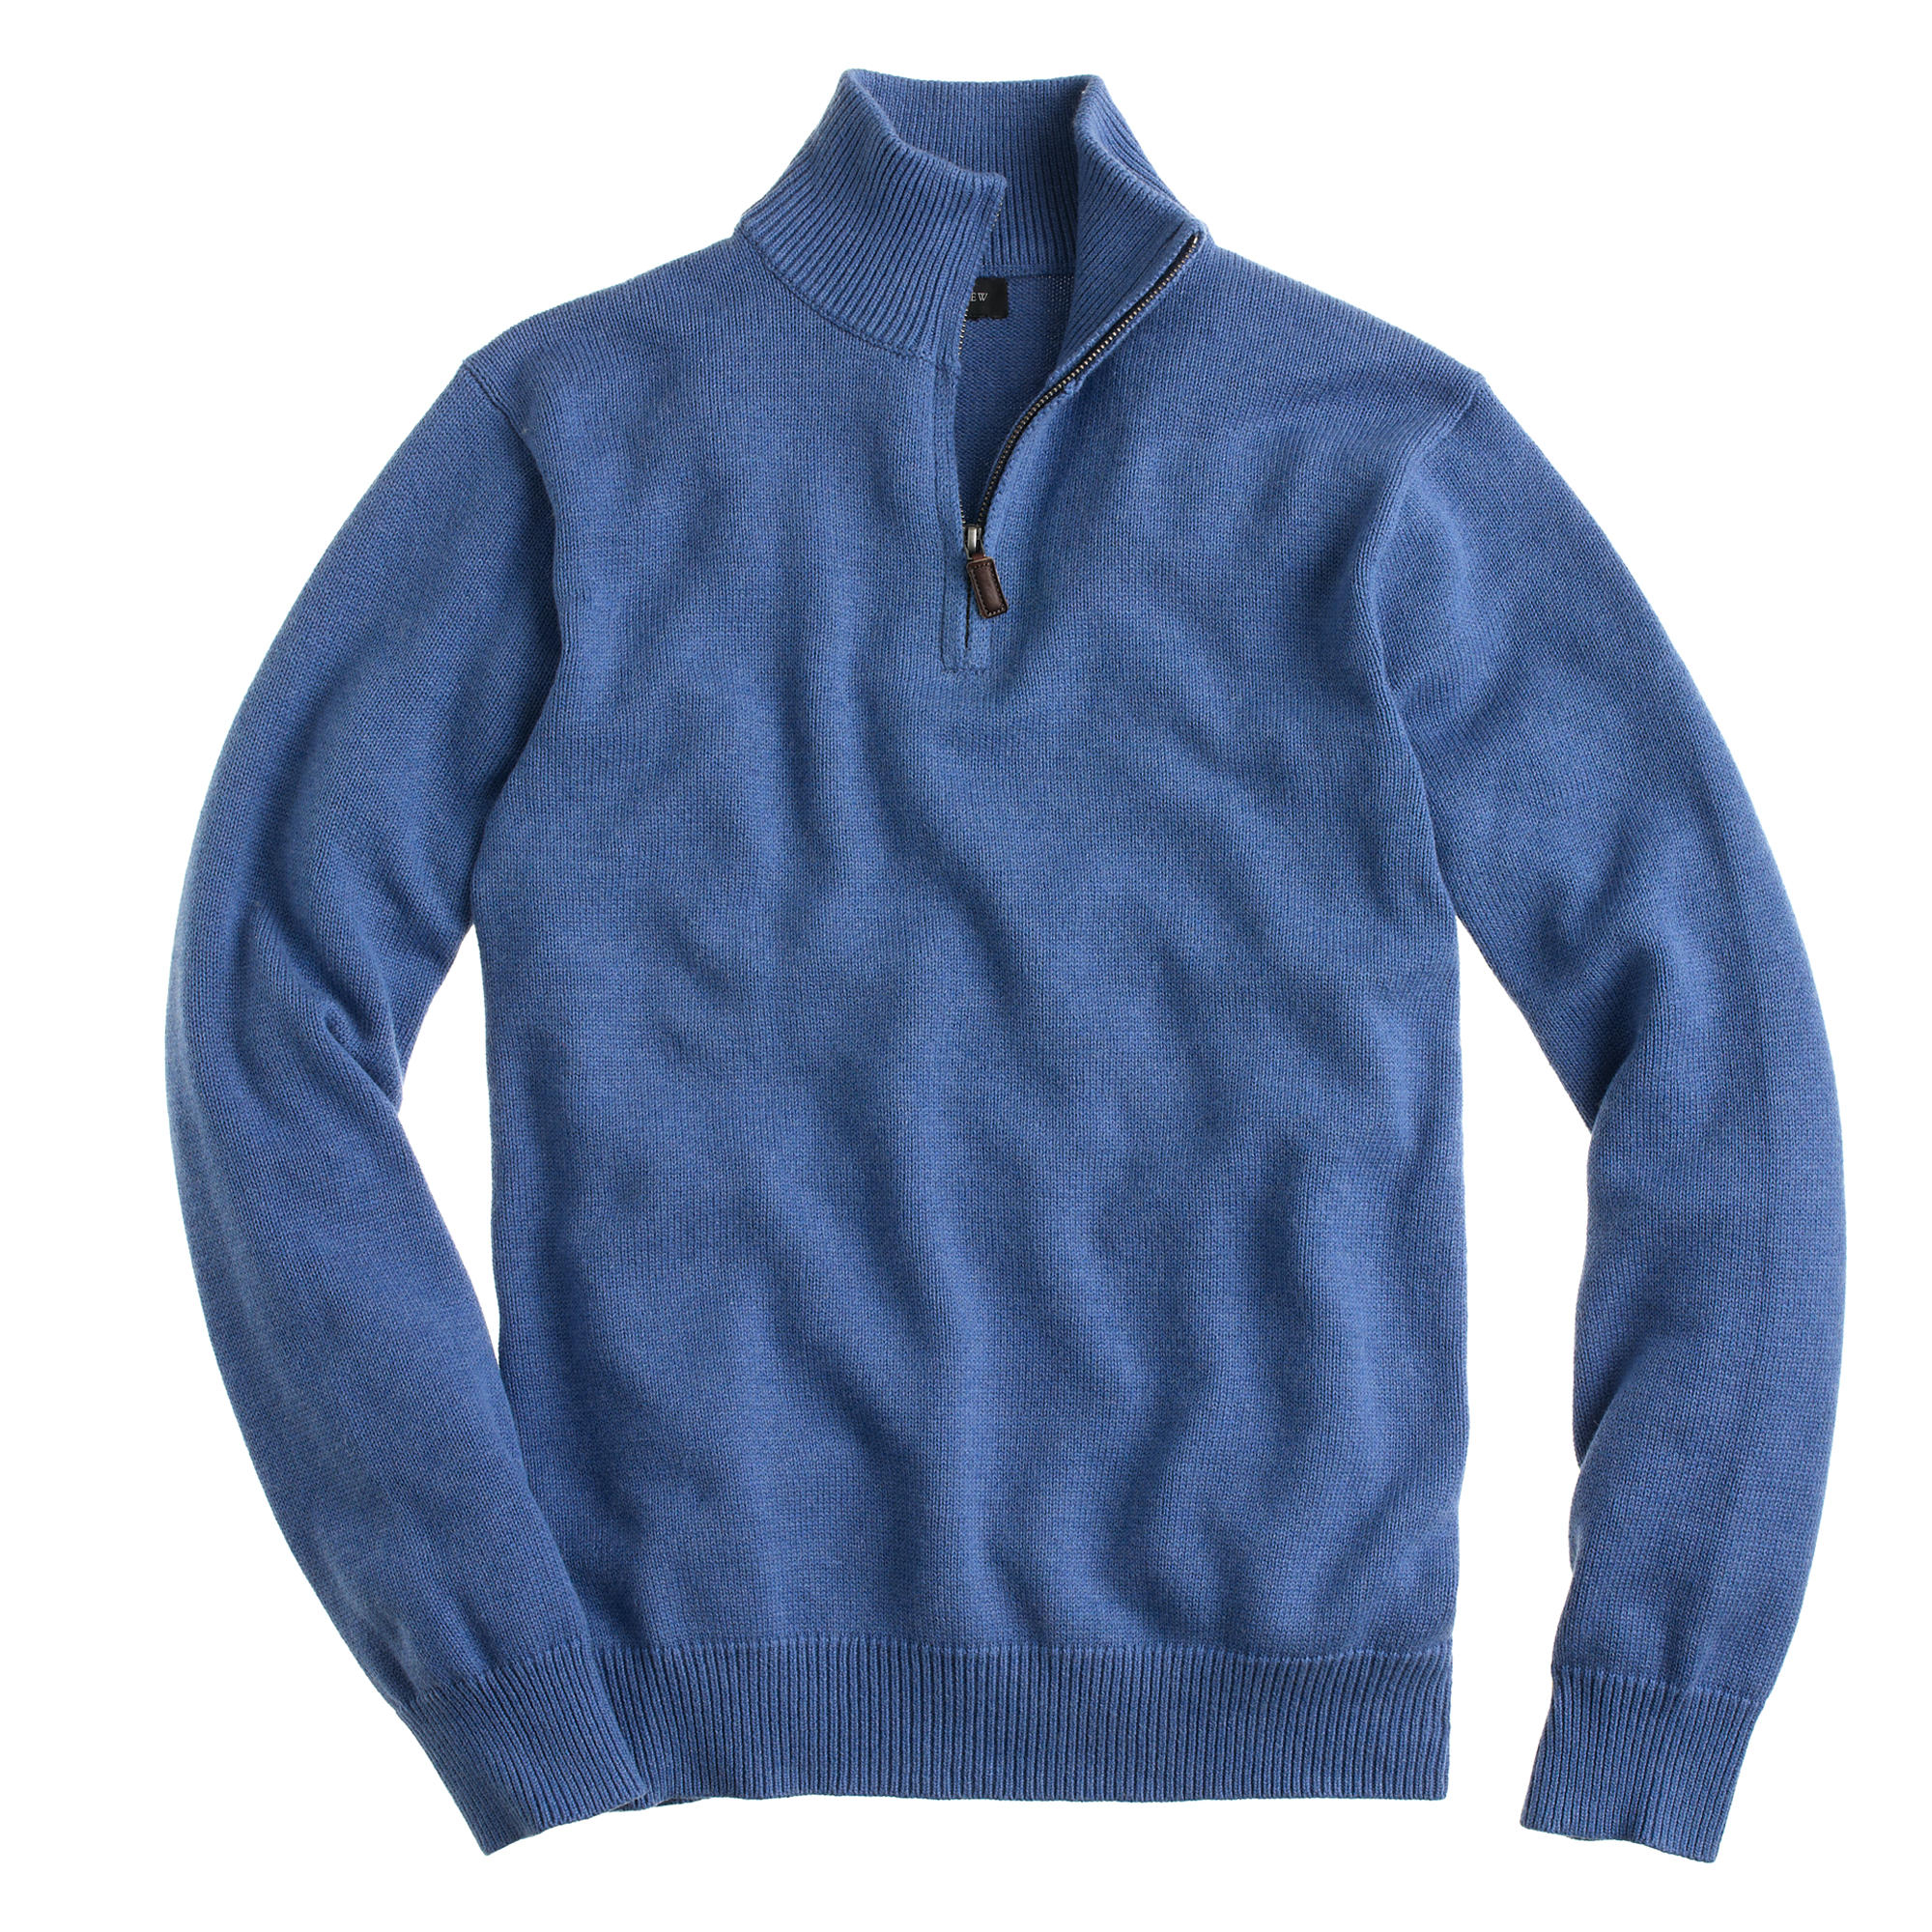 Loro Piana - Roadster Cashmere Half Zip Sweater getessay2016.tk, offering the modern energy, style and personalized service of Saks Fifth Avenue stores, in an enhanced, easy-to-navigate shopping experience.